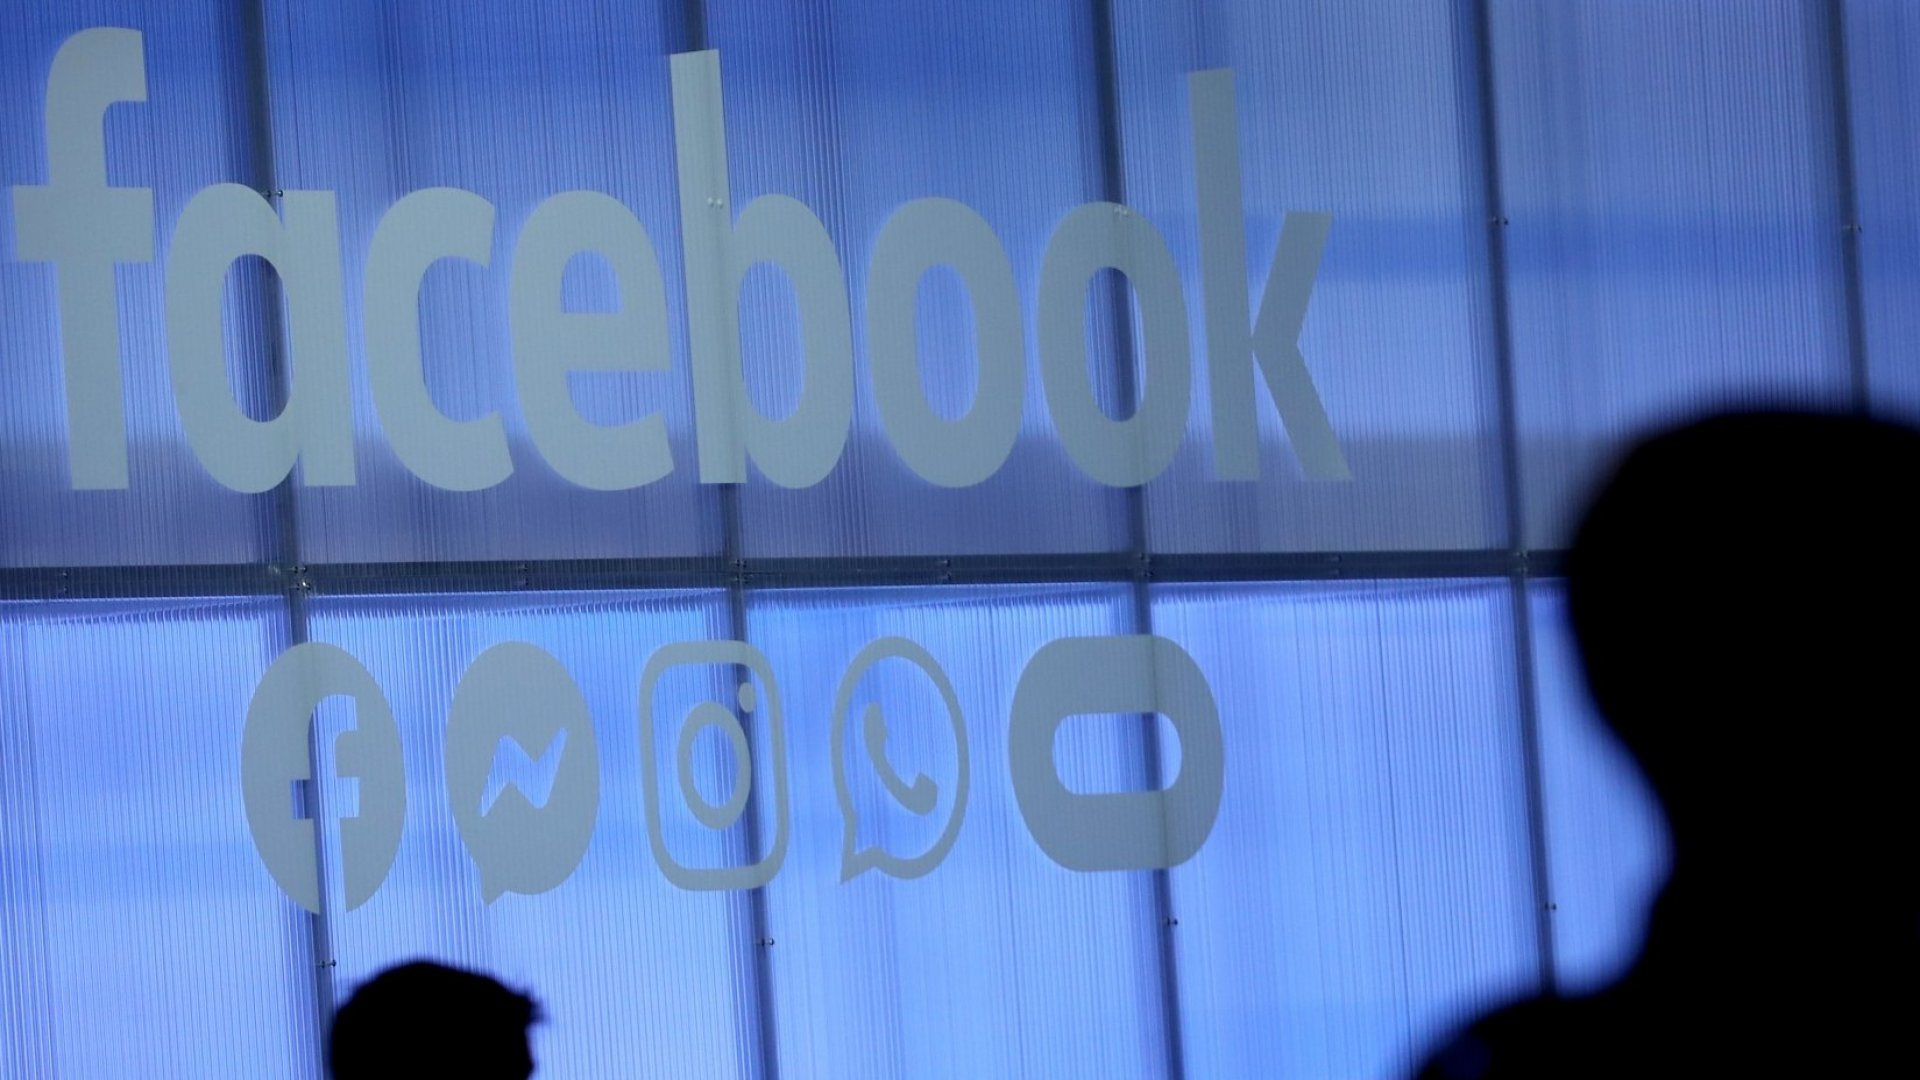 Why This Facebook Co-founder Says It's Time to Break Up the Company